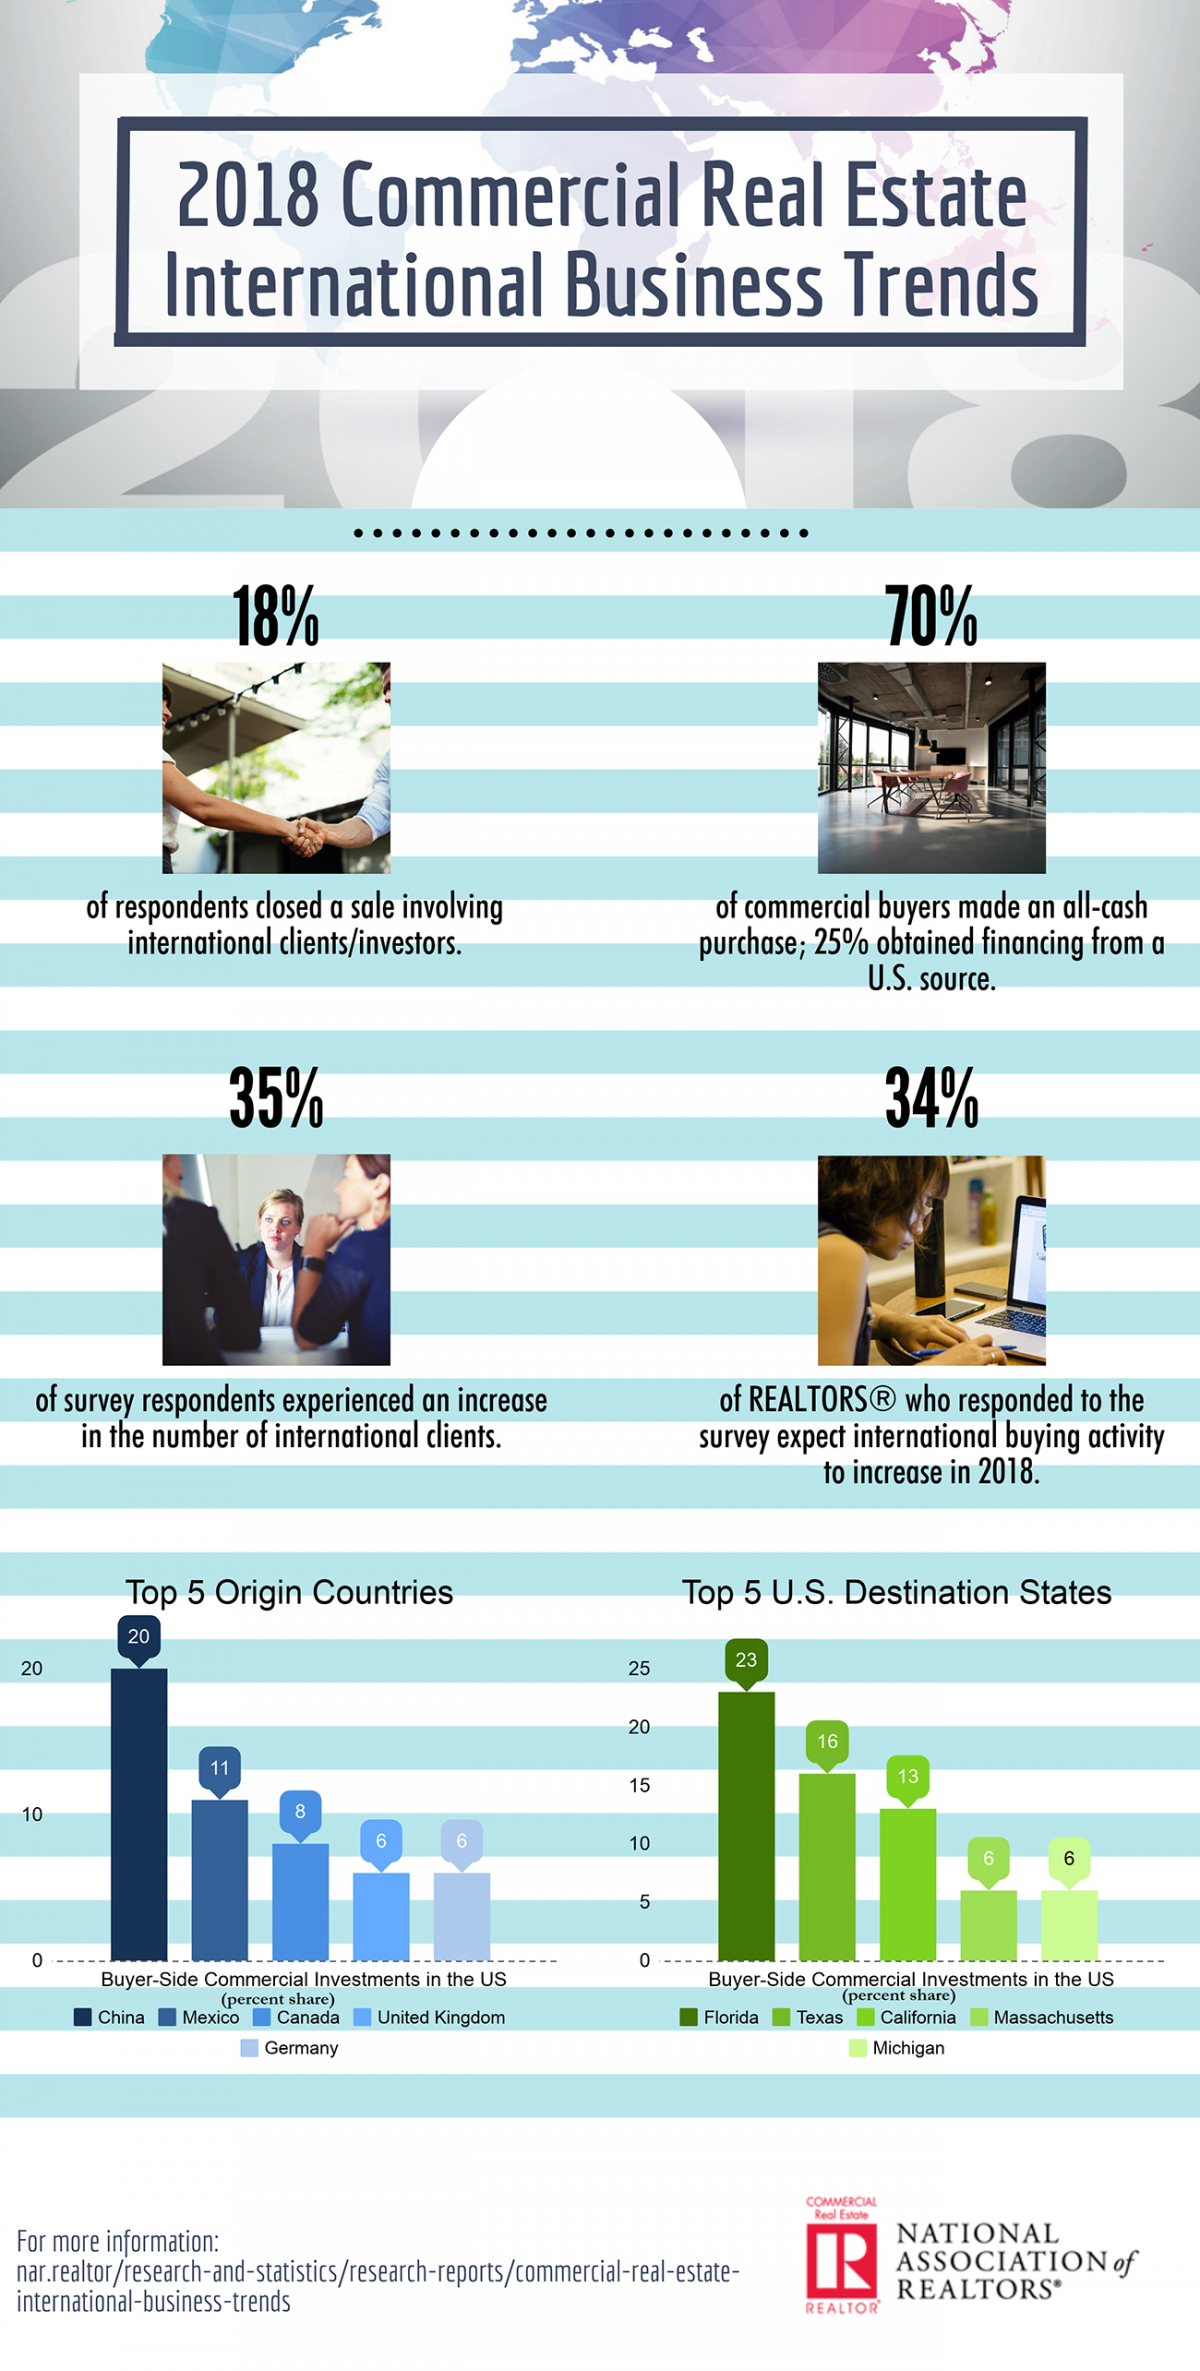 2018 commercial real estate international business trends infographic 06 28 2018 1300w 2569h